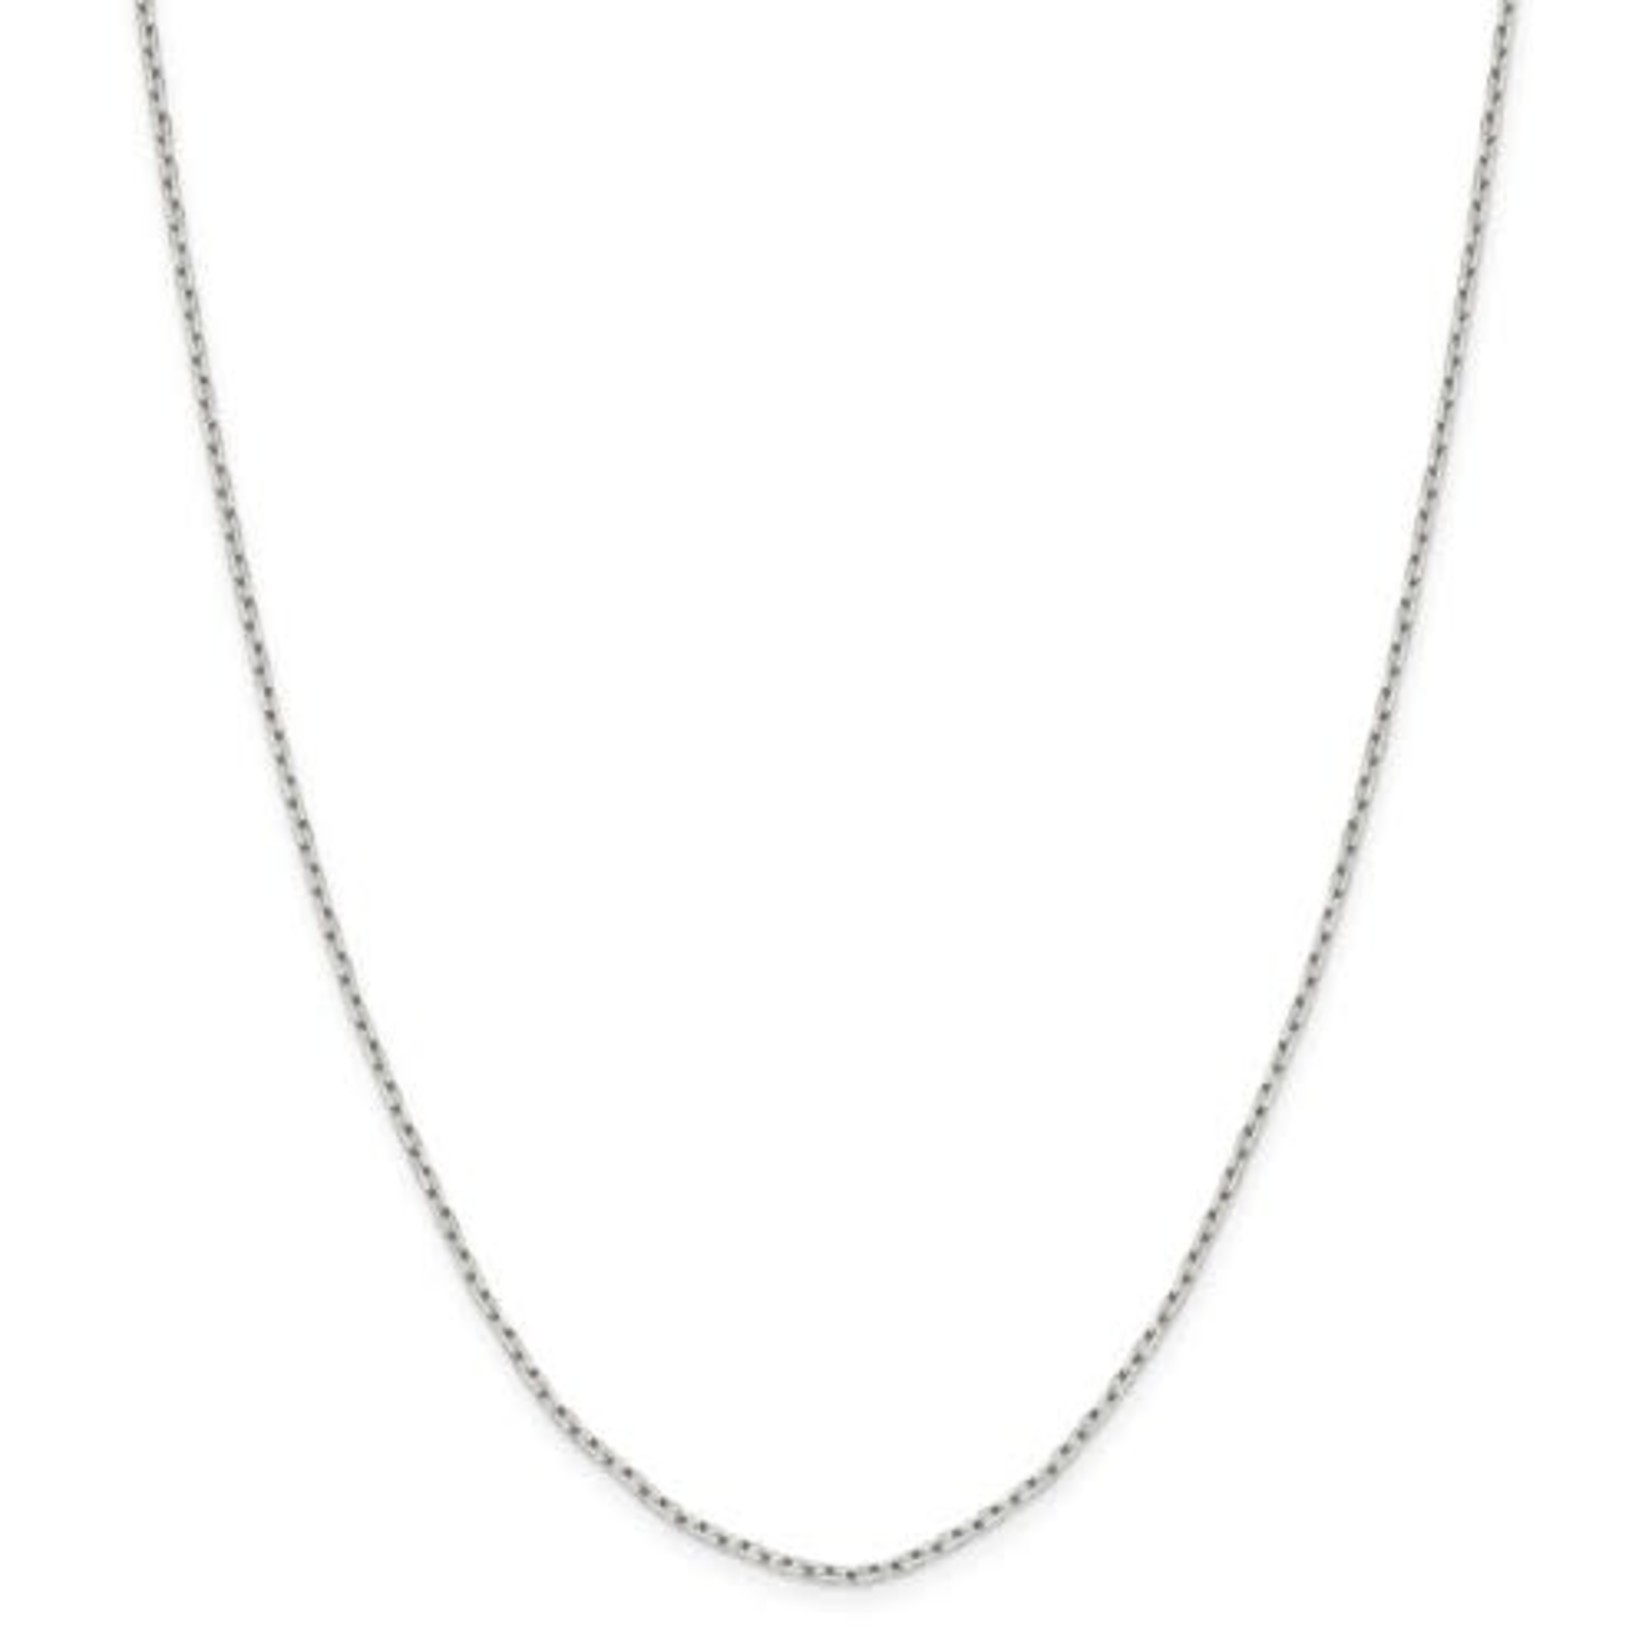 This Is Life Sterling Silver 1.65mm 8 Sided Diamond Cut Cable 16 Inch Chain